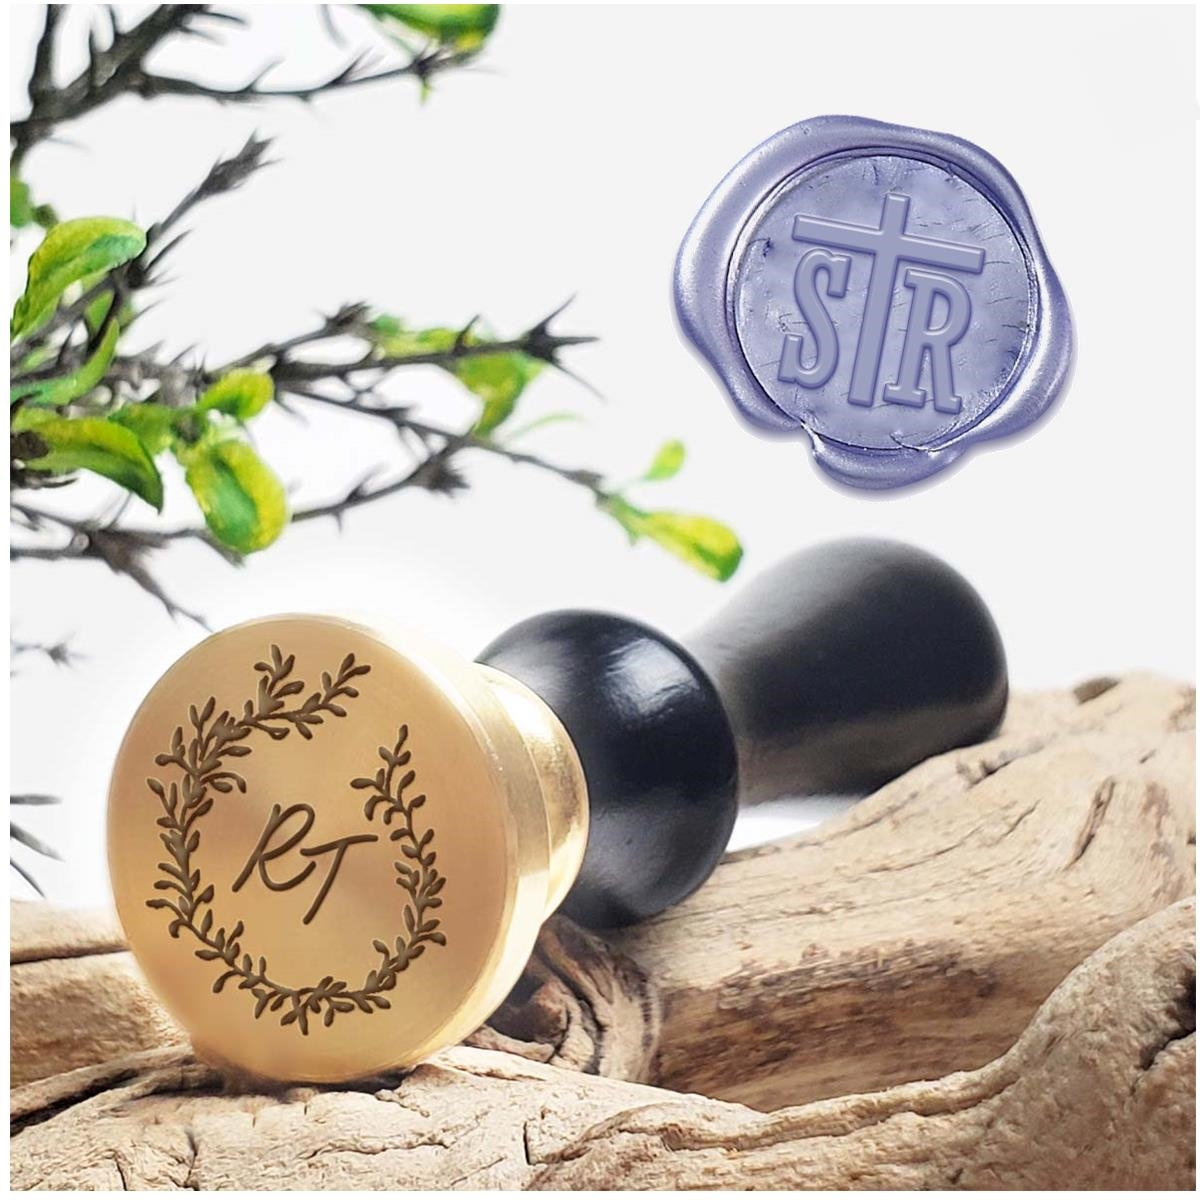 Custom Wax Seal Stamps 2 Initial Monograms On 1 Die Decorative Layout Handle Options